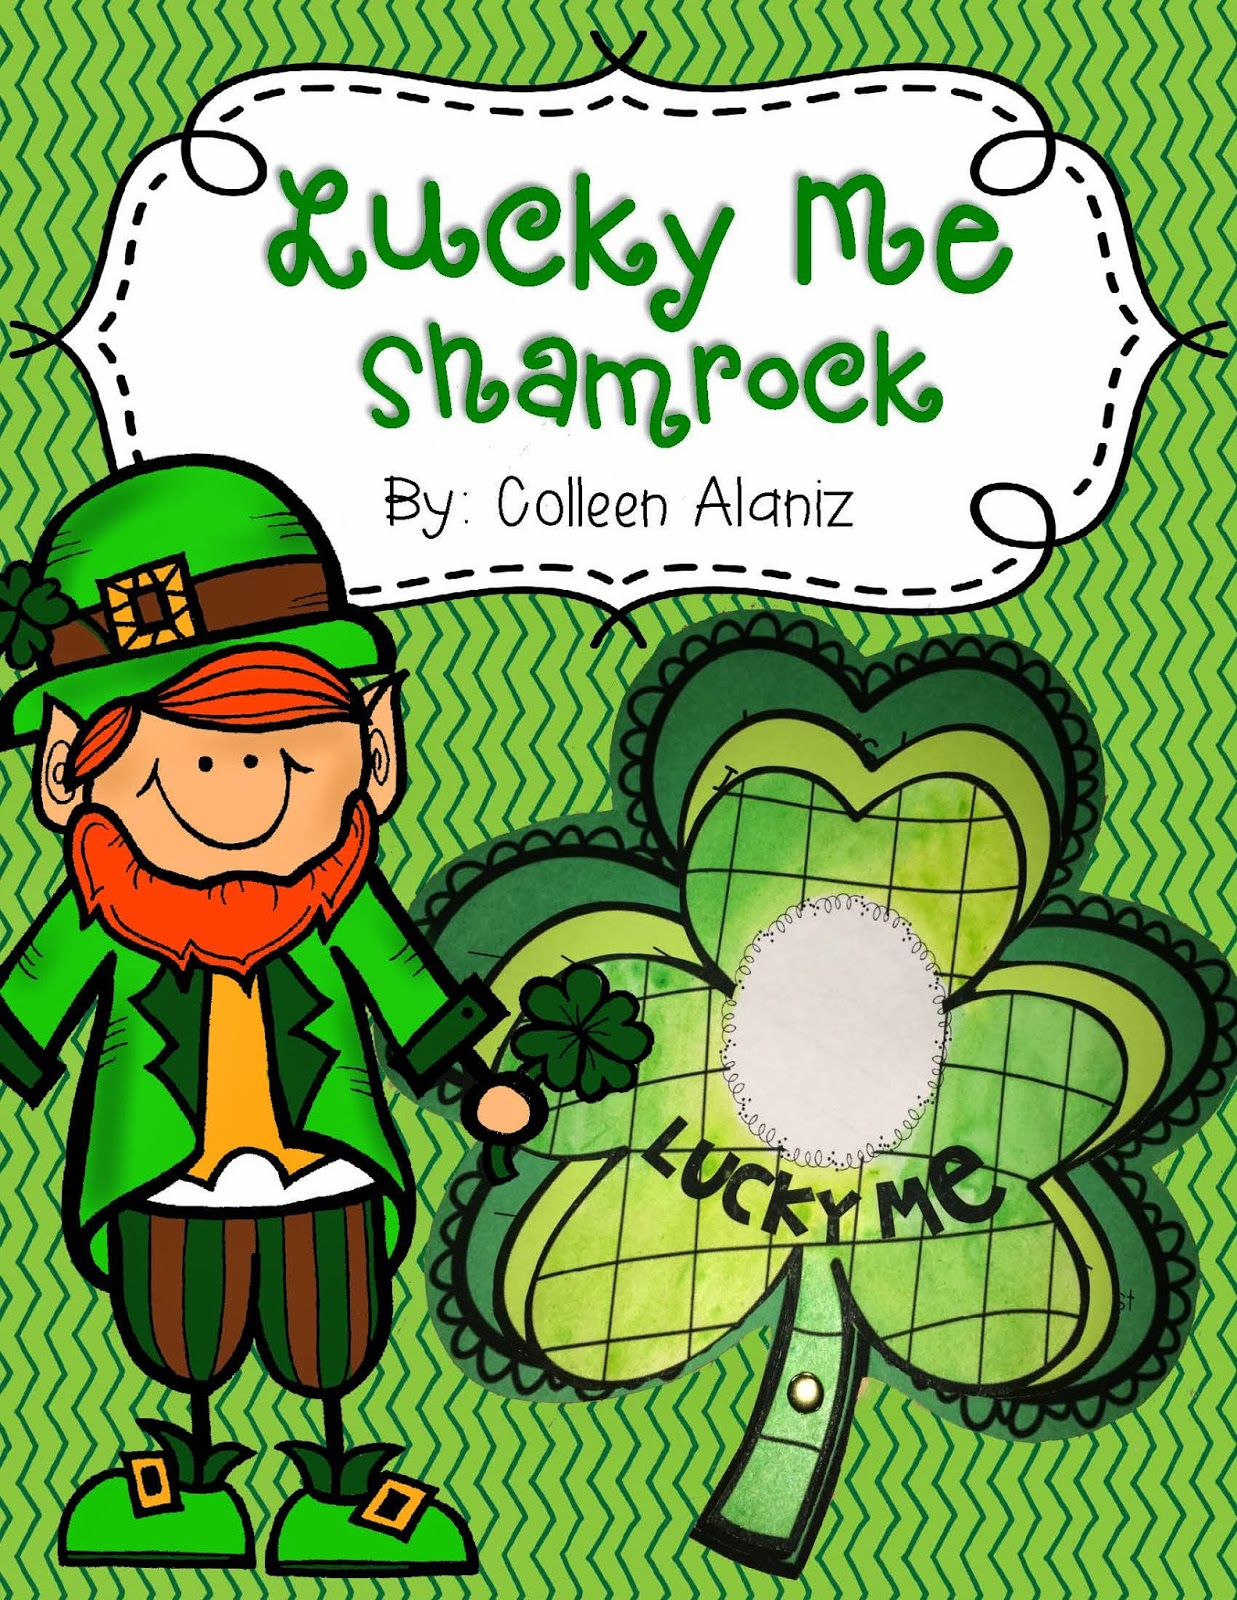 http://www.teacherspayteachers.com/Product/Lucky-Me-Shamrock-1127427